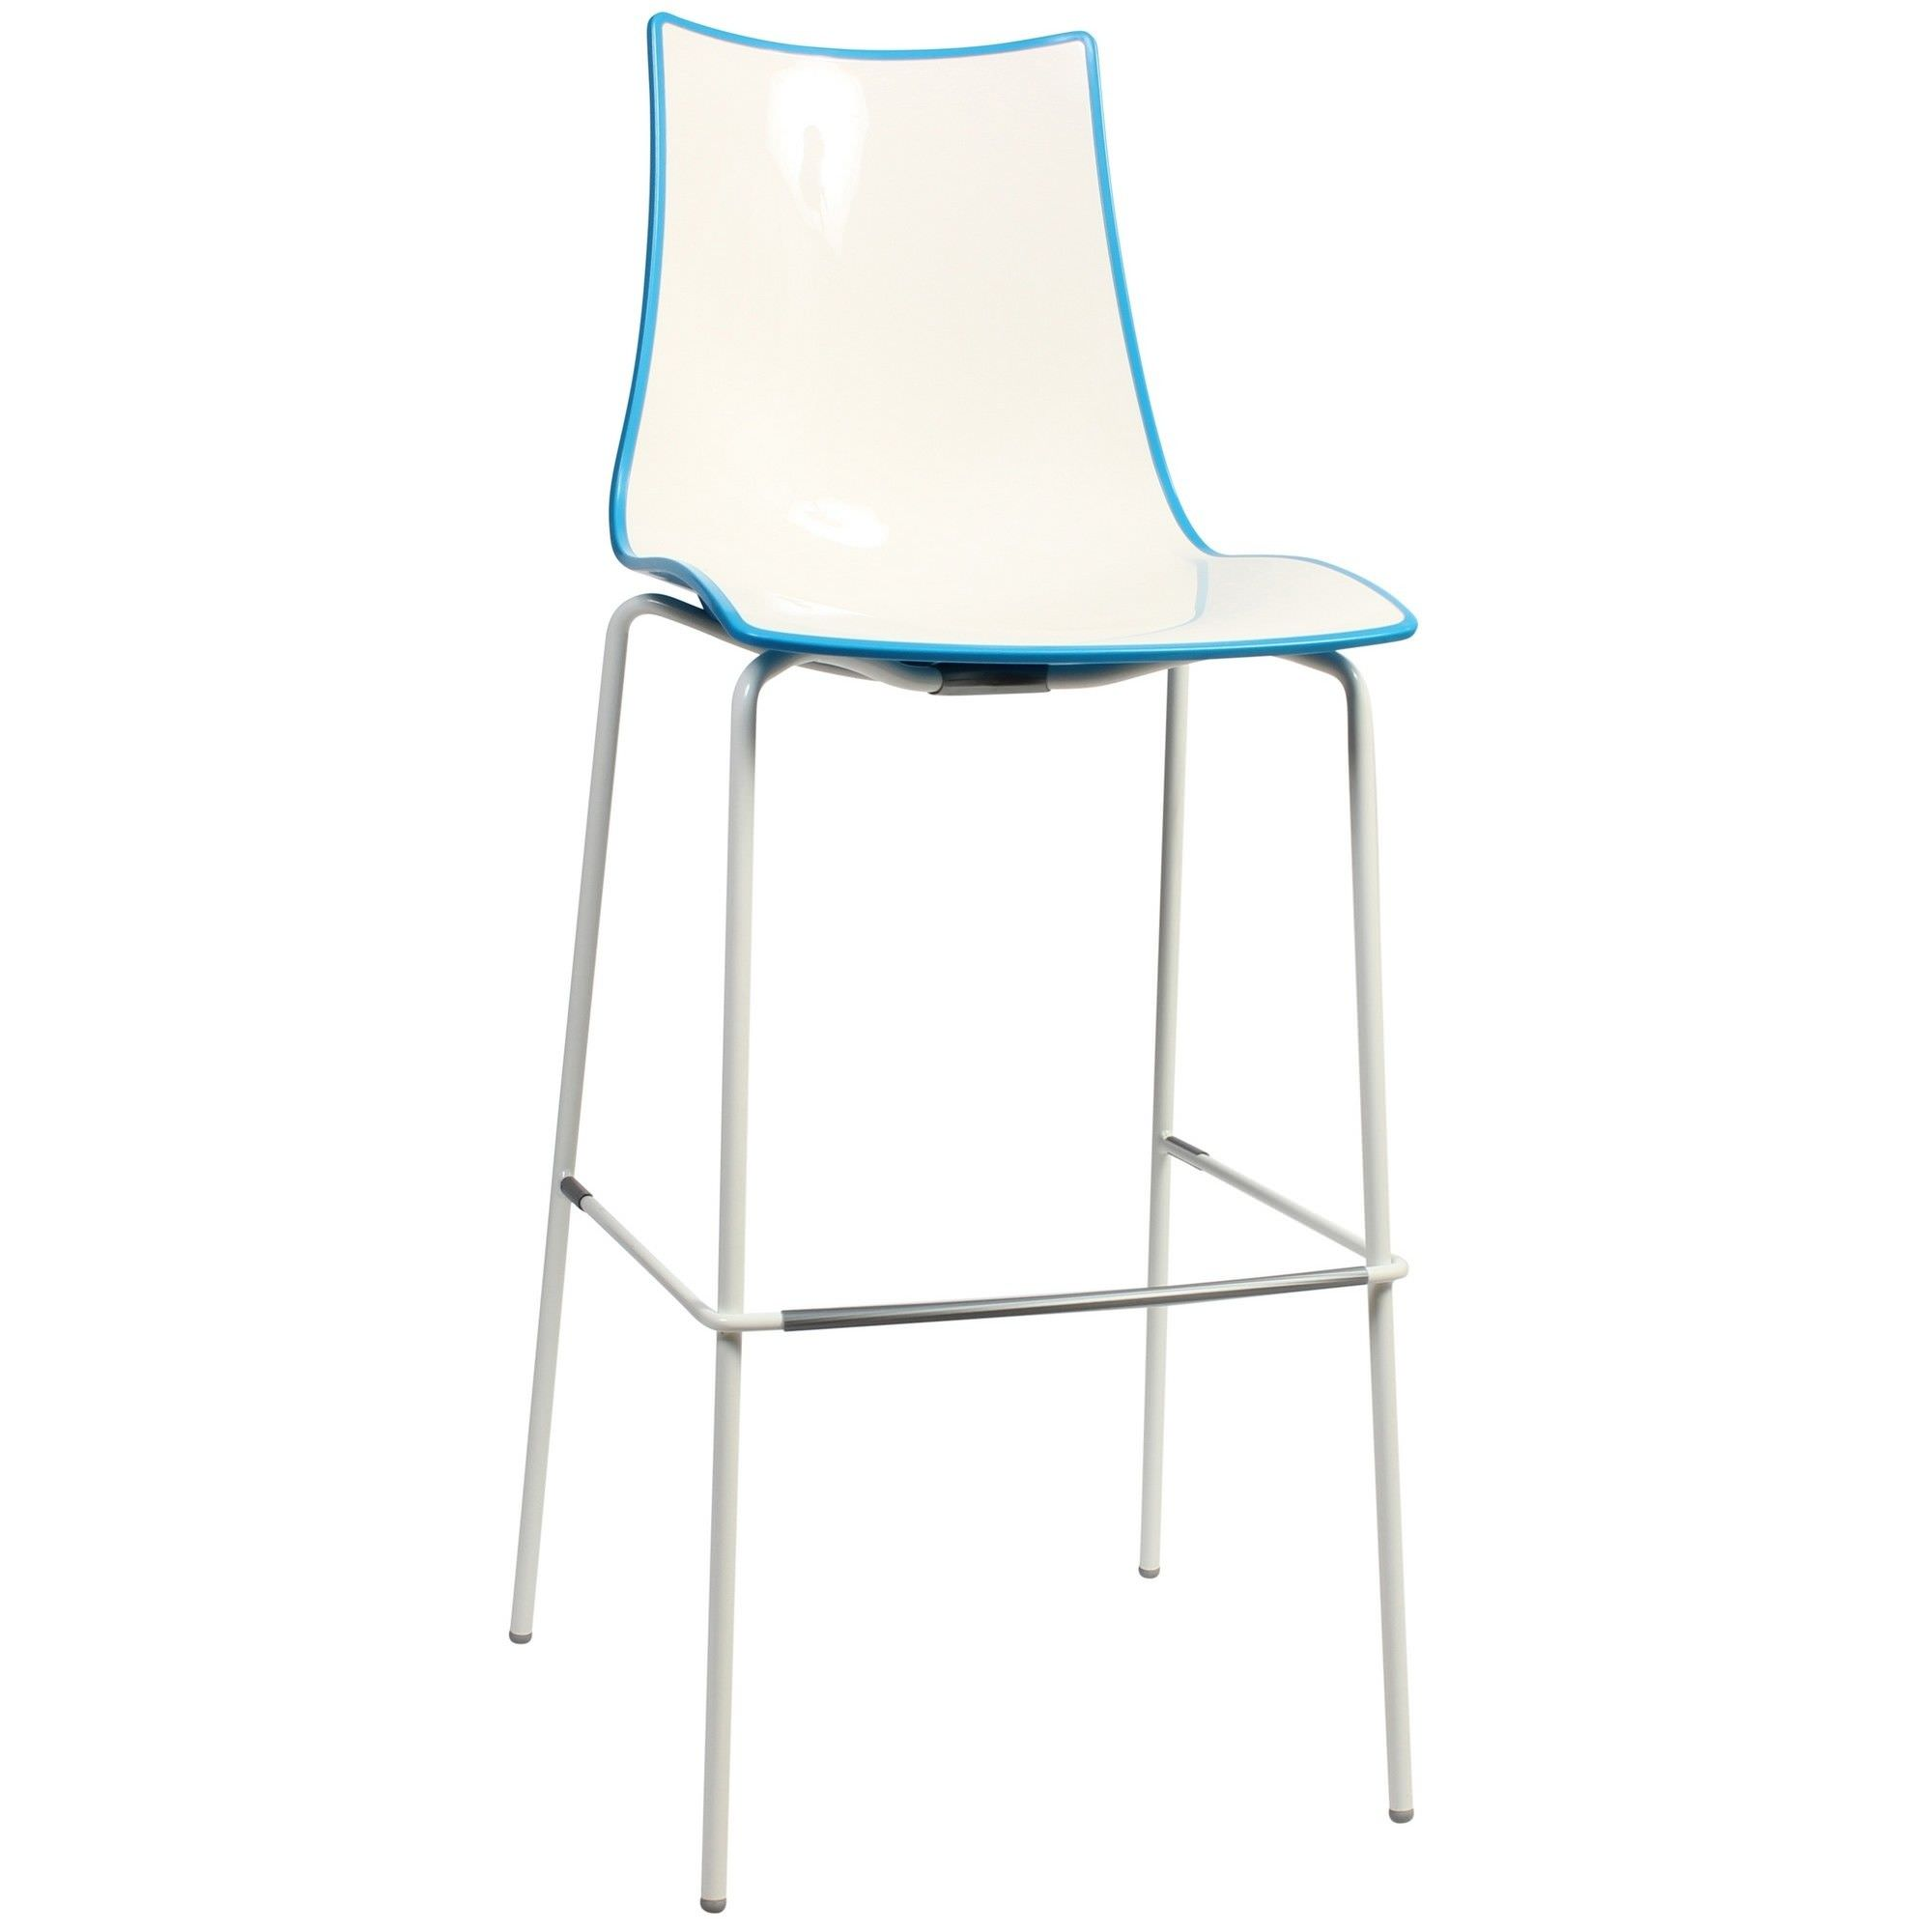 Zebra Bicolore Italian Made Commercial Grade Indoor/Outdoor Bar Stool, Metal Leg, Blue / White